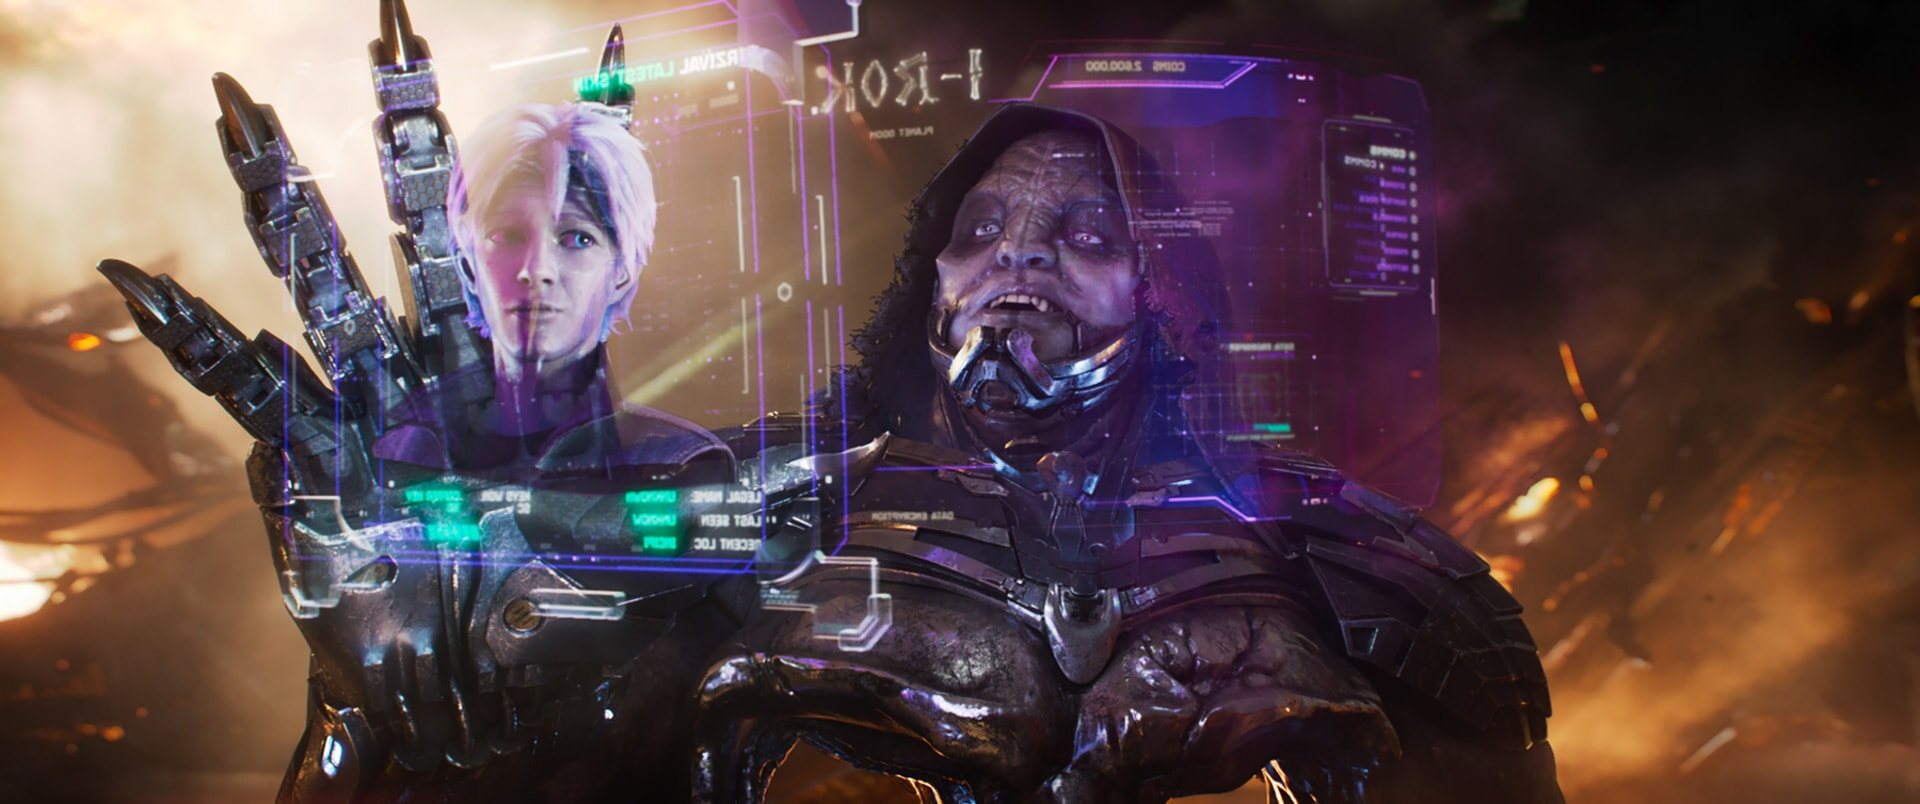 """(L-R) TYE SHERIDAN as Parzival and T.J. MILLER as I-R0k in Warner Bros. Pictures', Amblin Entertainment's and Village Roadshow Pictures' action adventure """"READY PLAYER ONE,"""" a Warner Bros. Pictures release."""